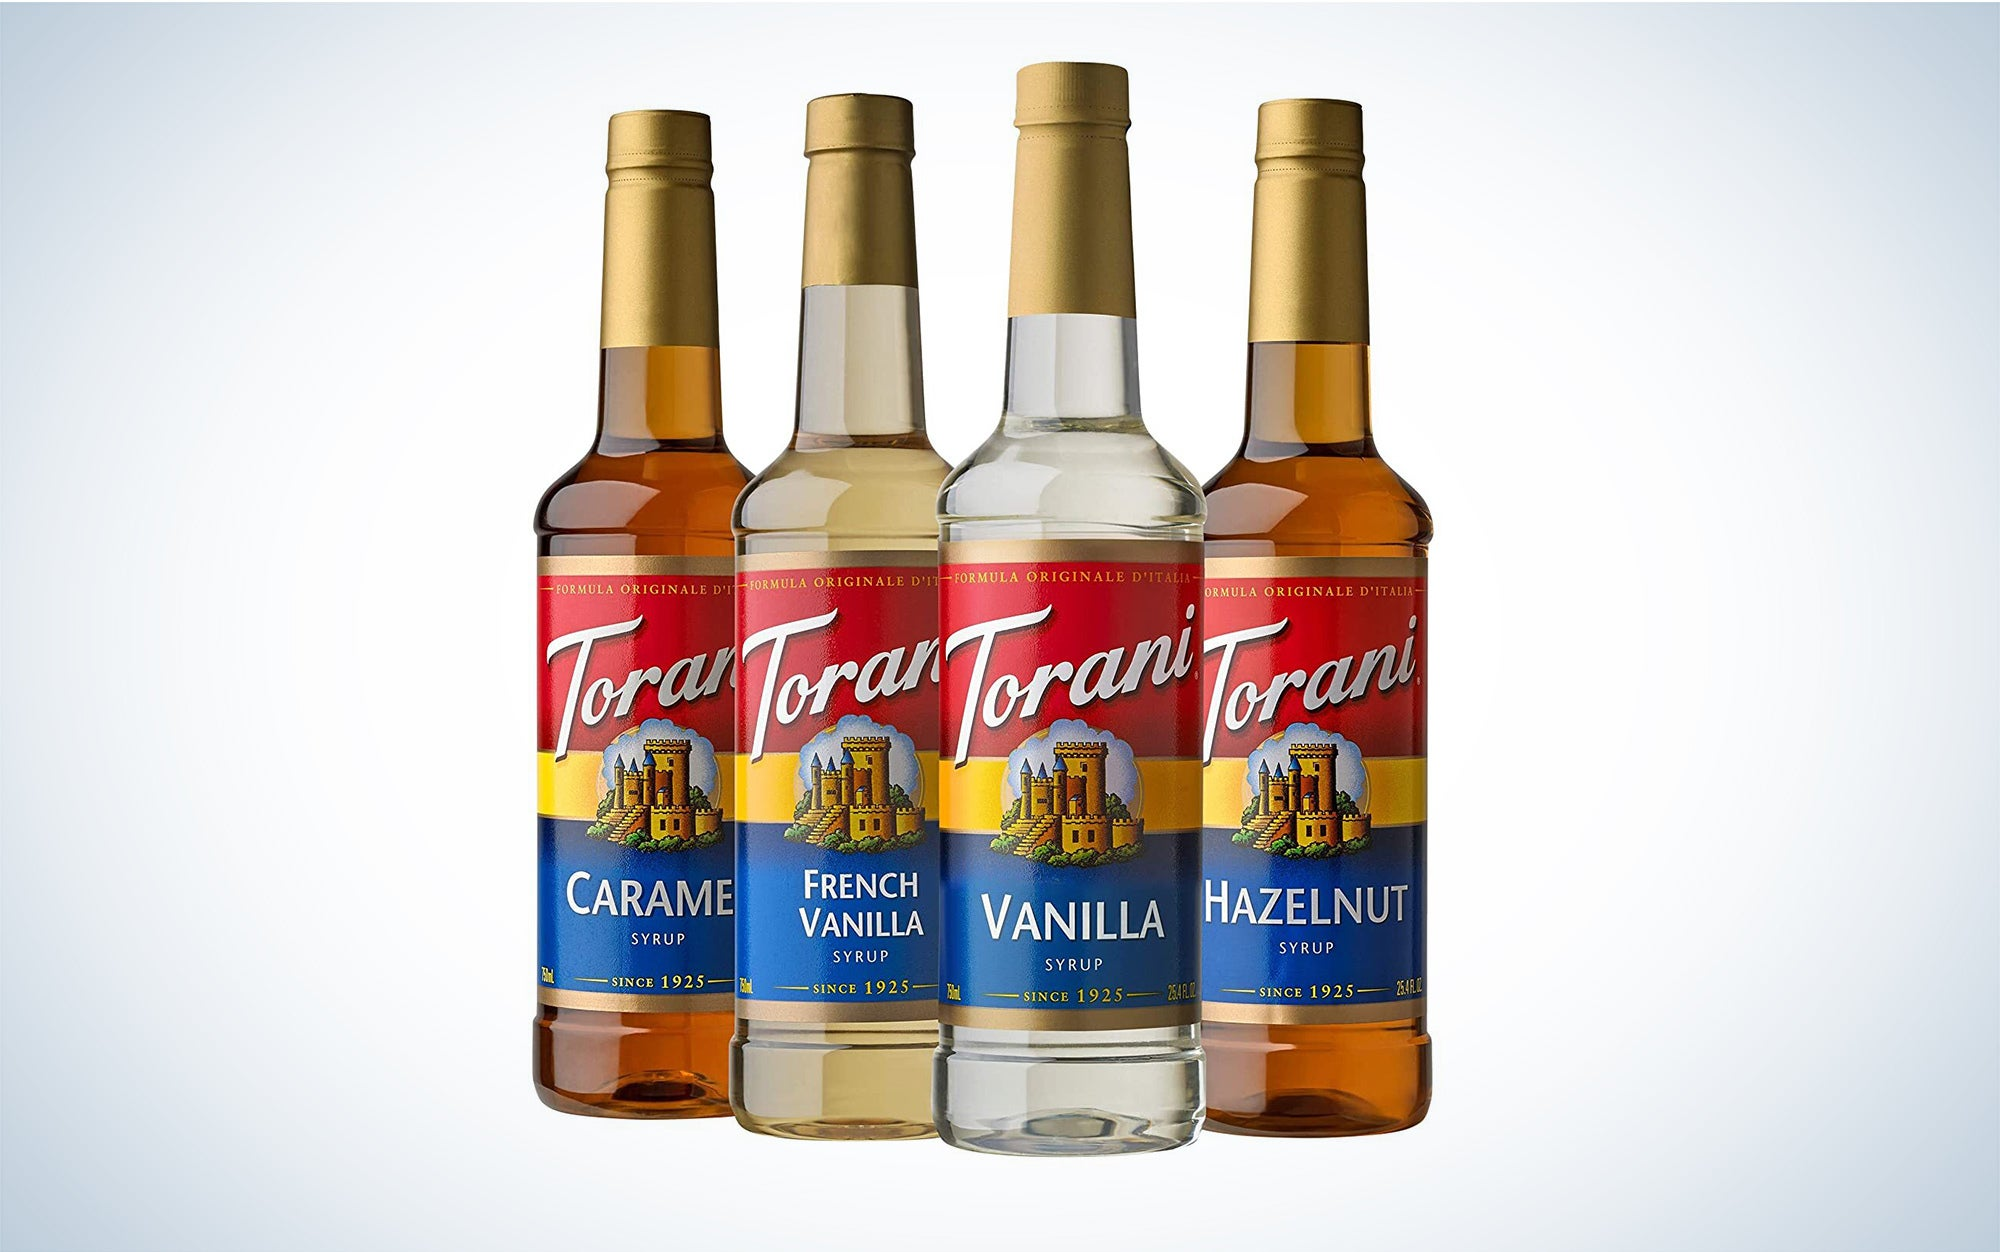 a selection of Torani syrups for flavoring coffee